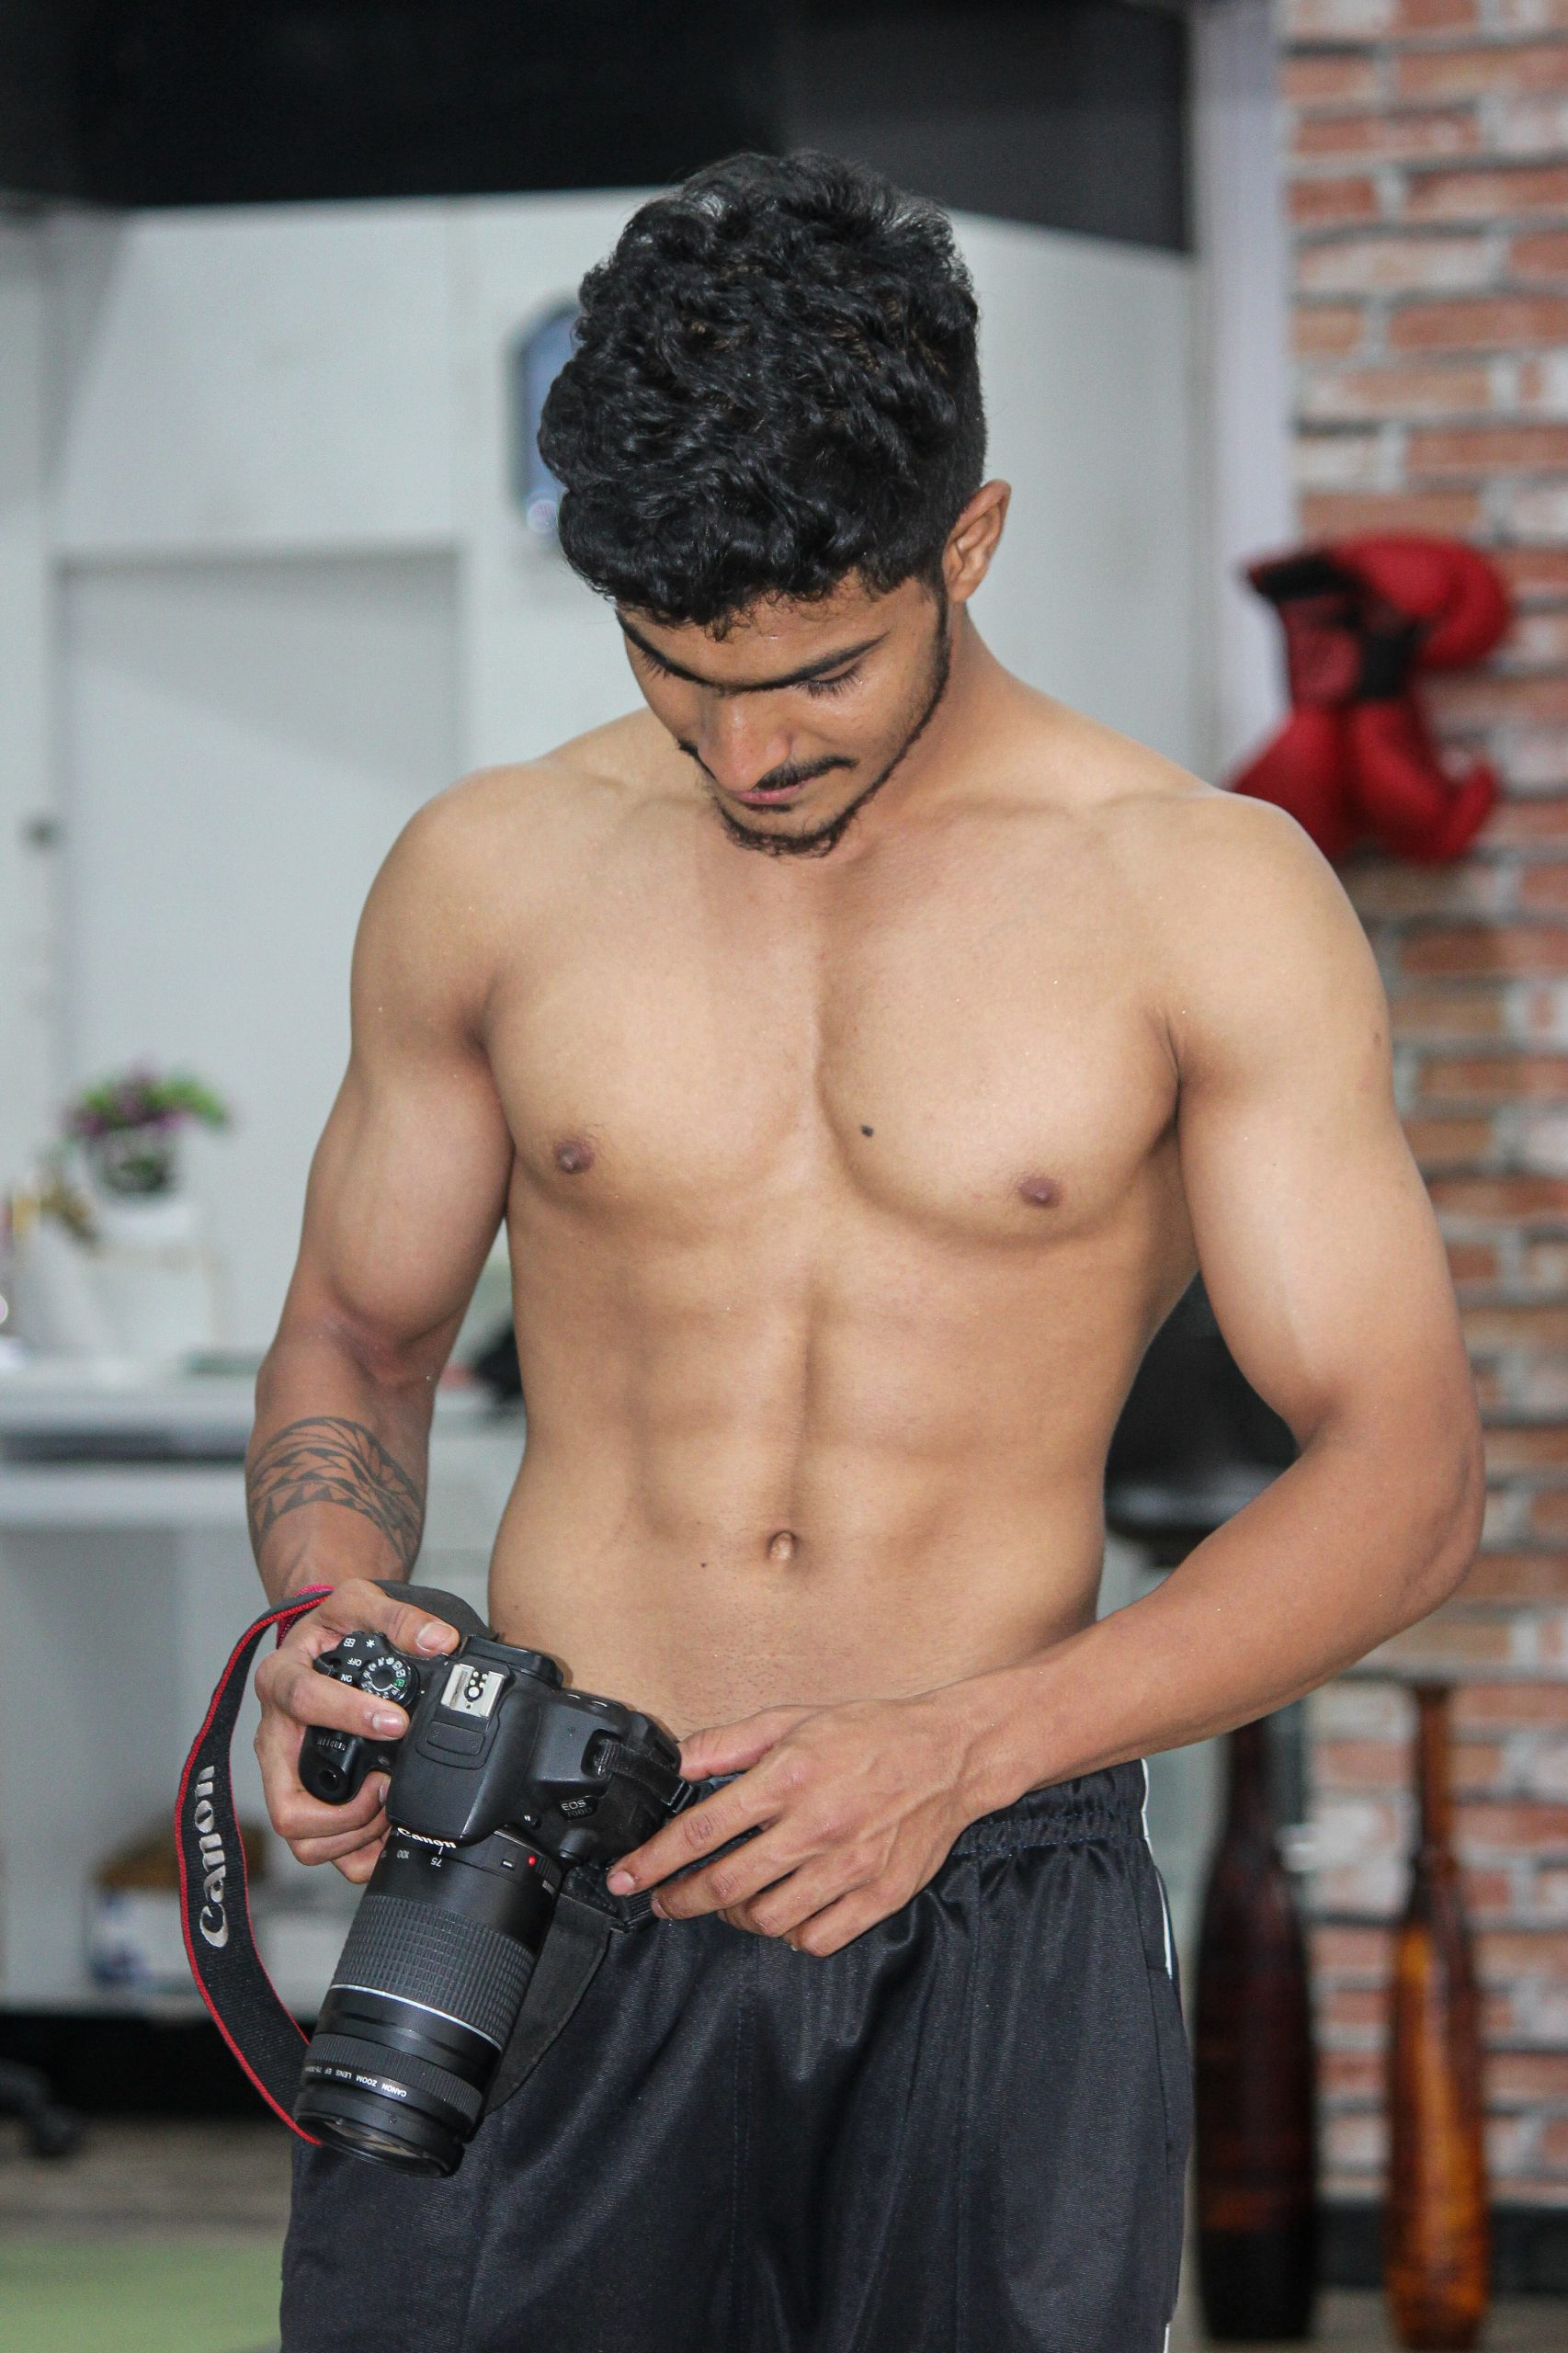 A fitness model with a camera